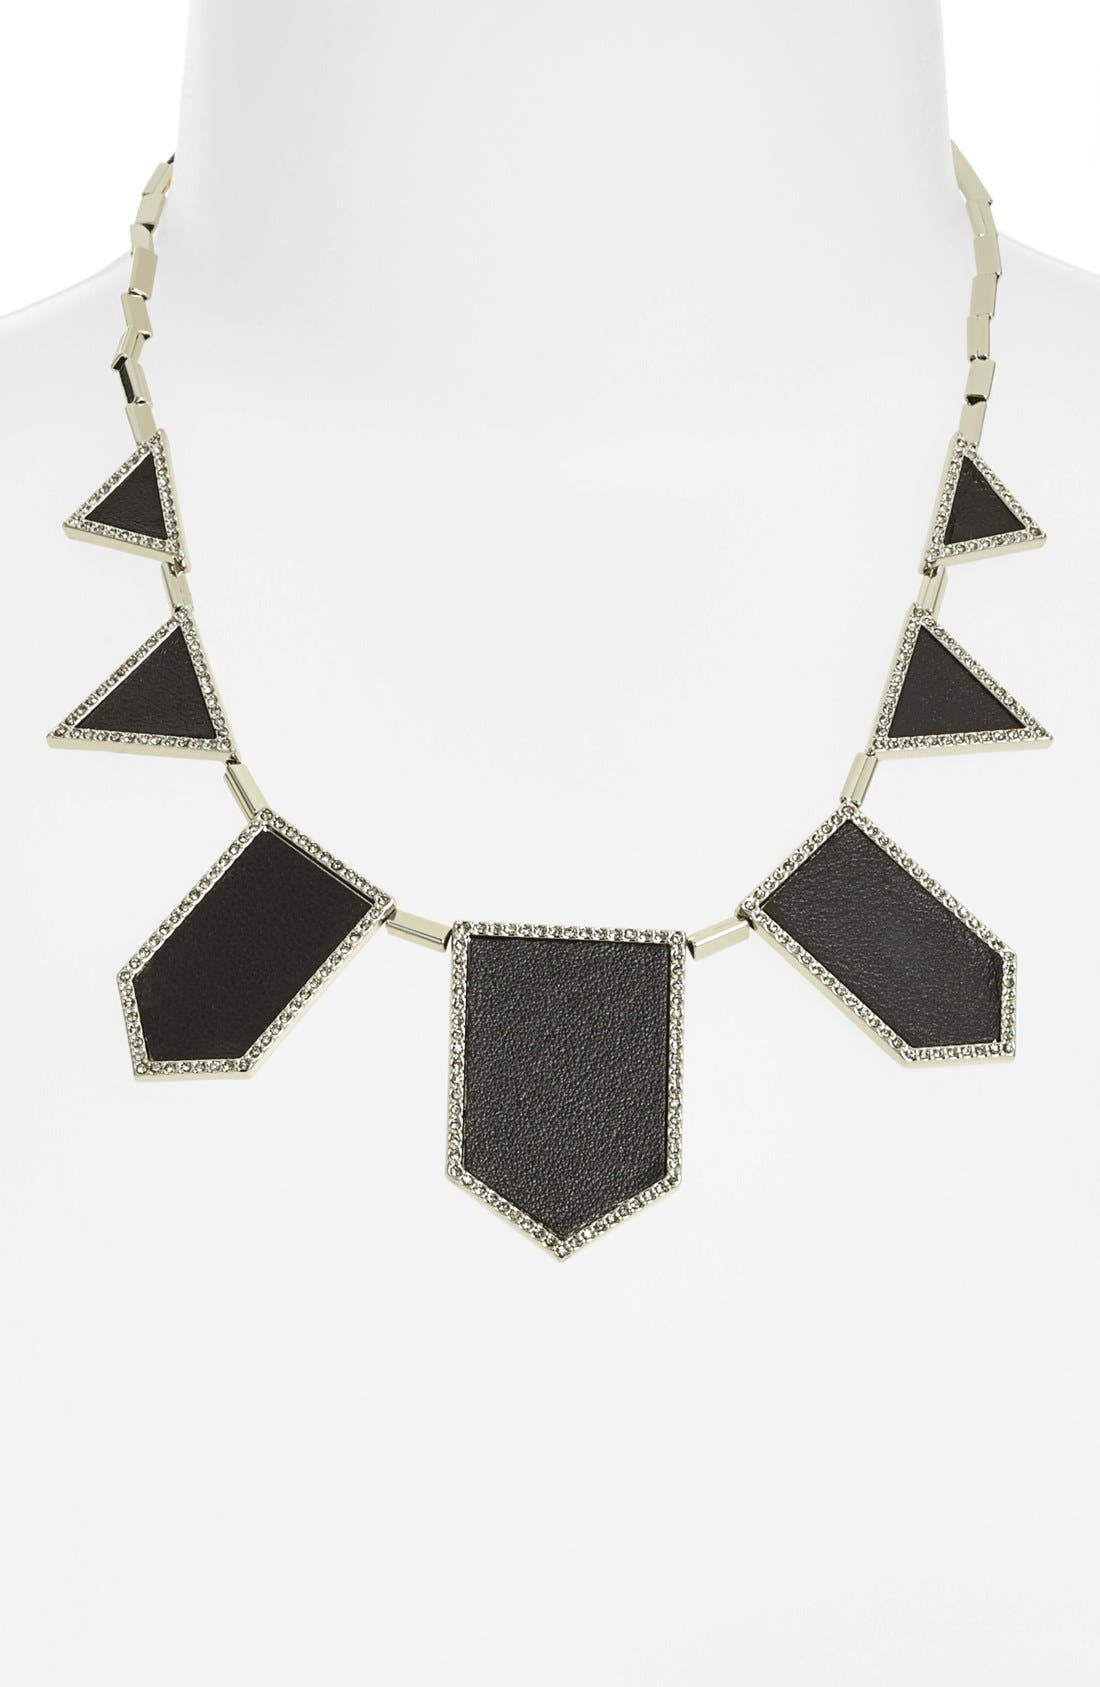 Main Image - House of Harlow 1960 Pavé Leather Bib Necklace